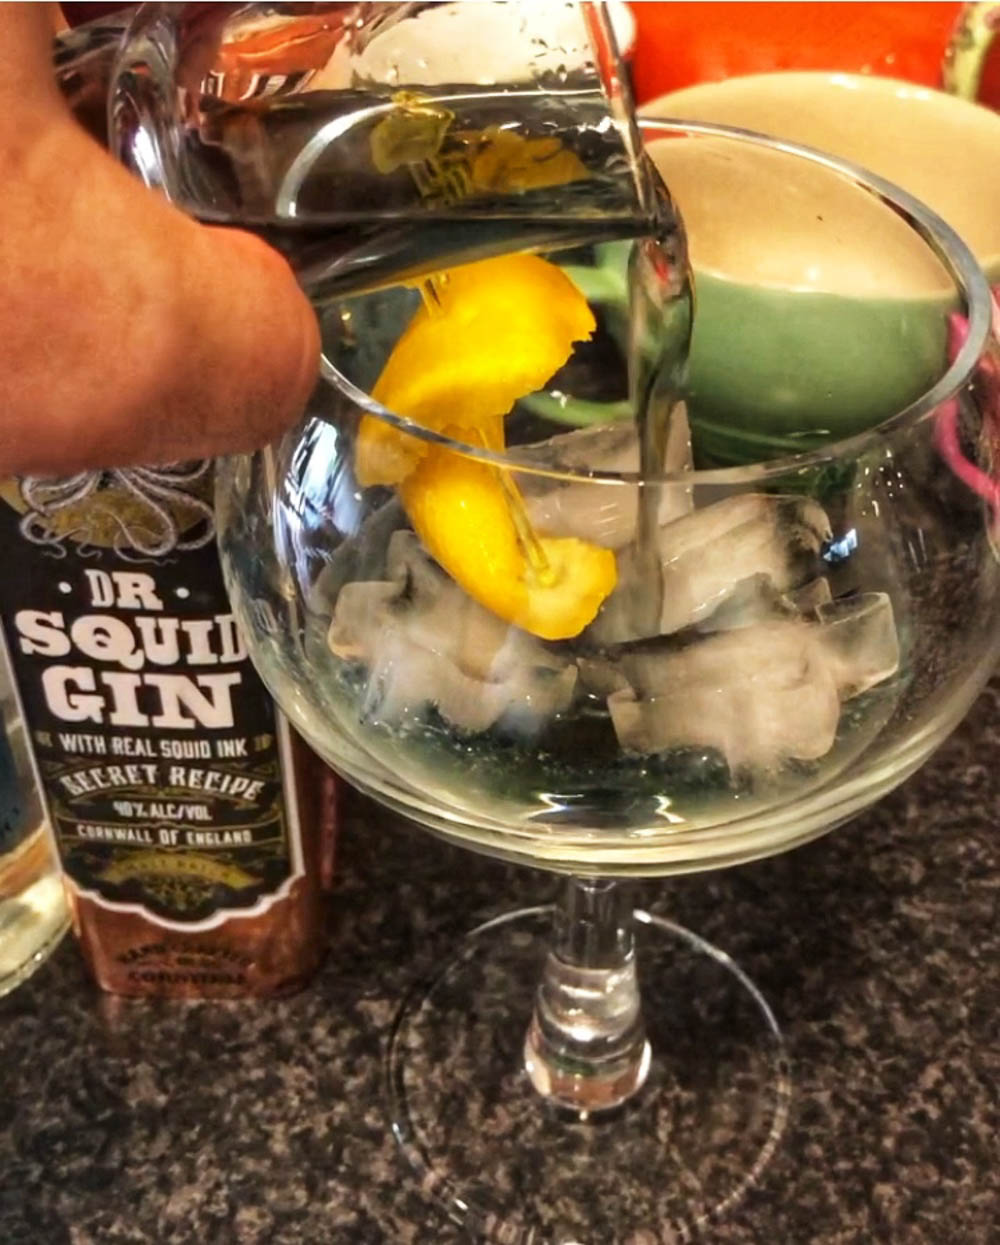 the gin is made with real squid ink